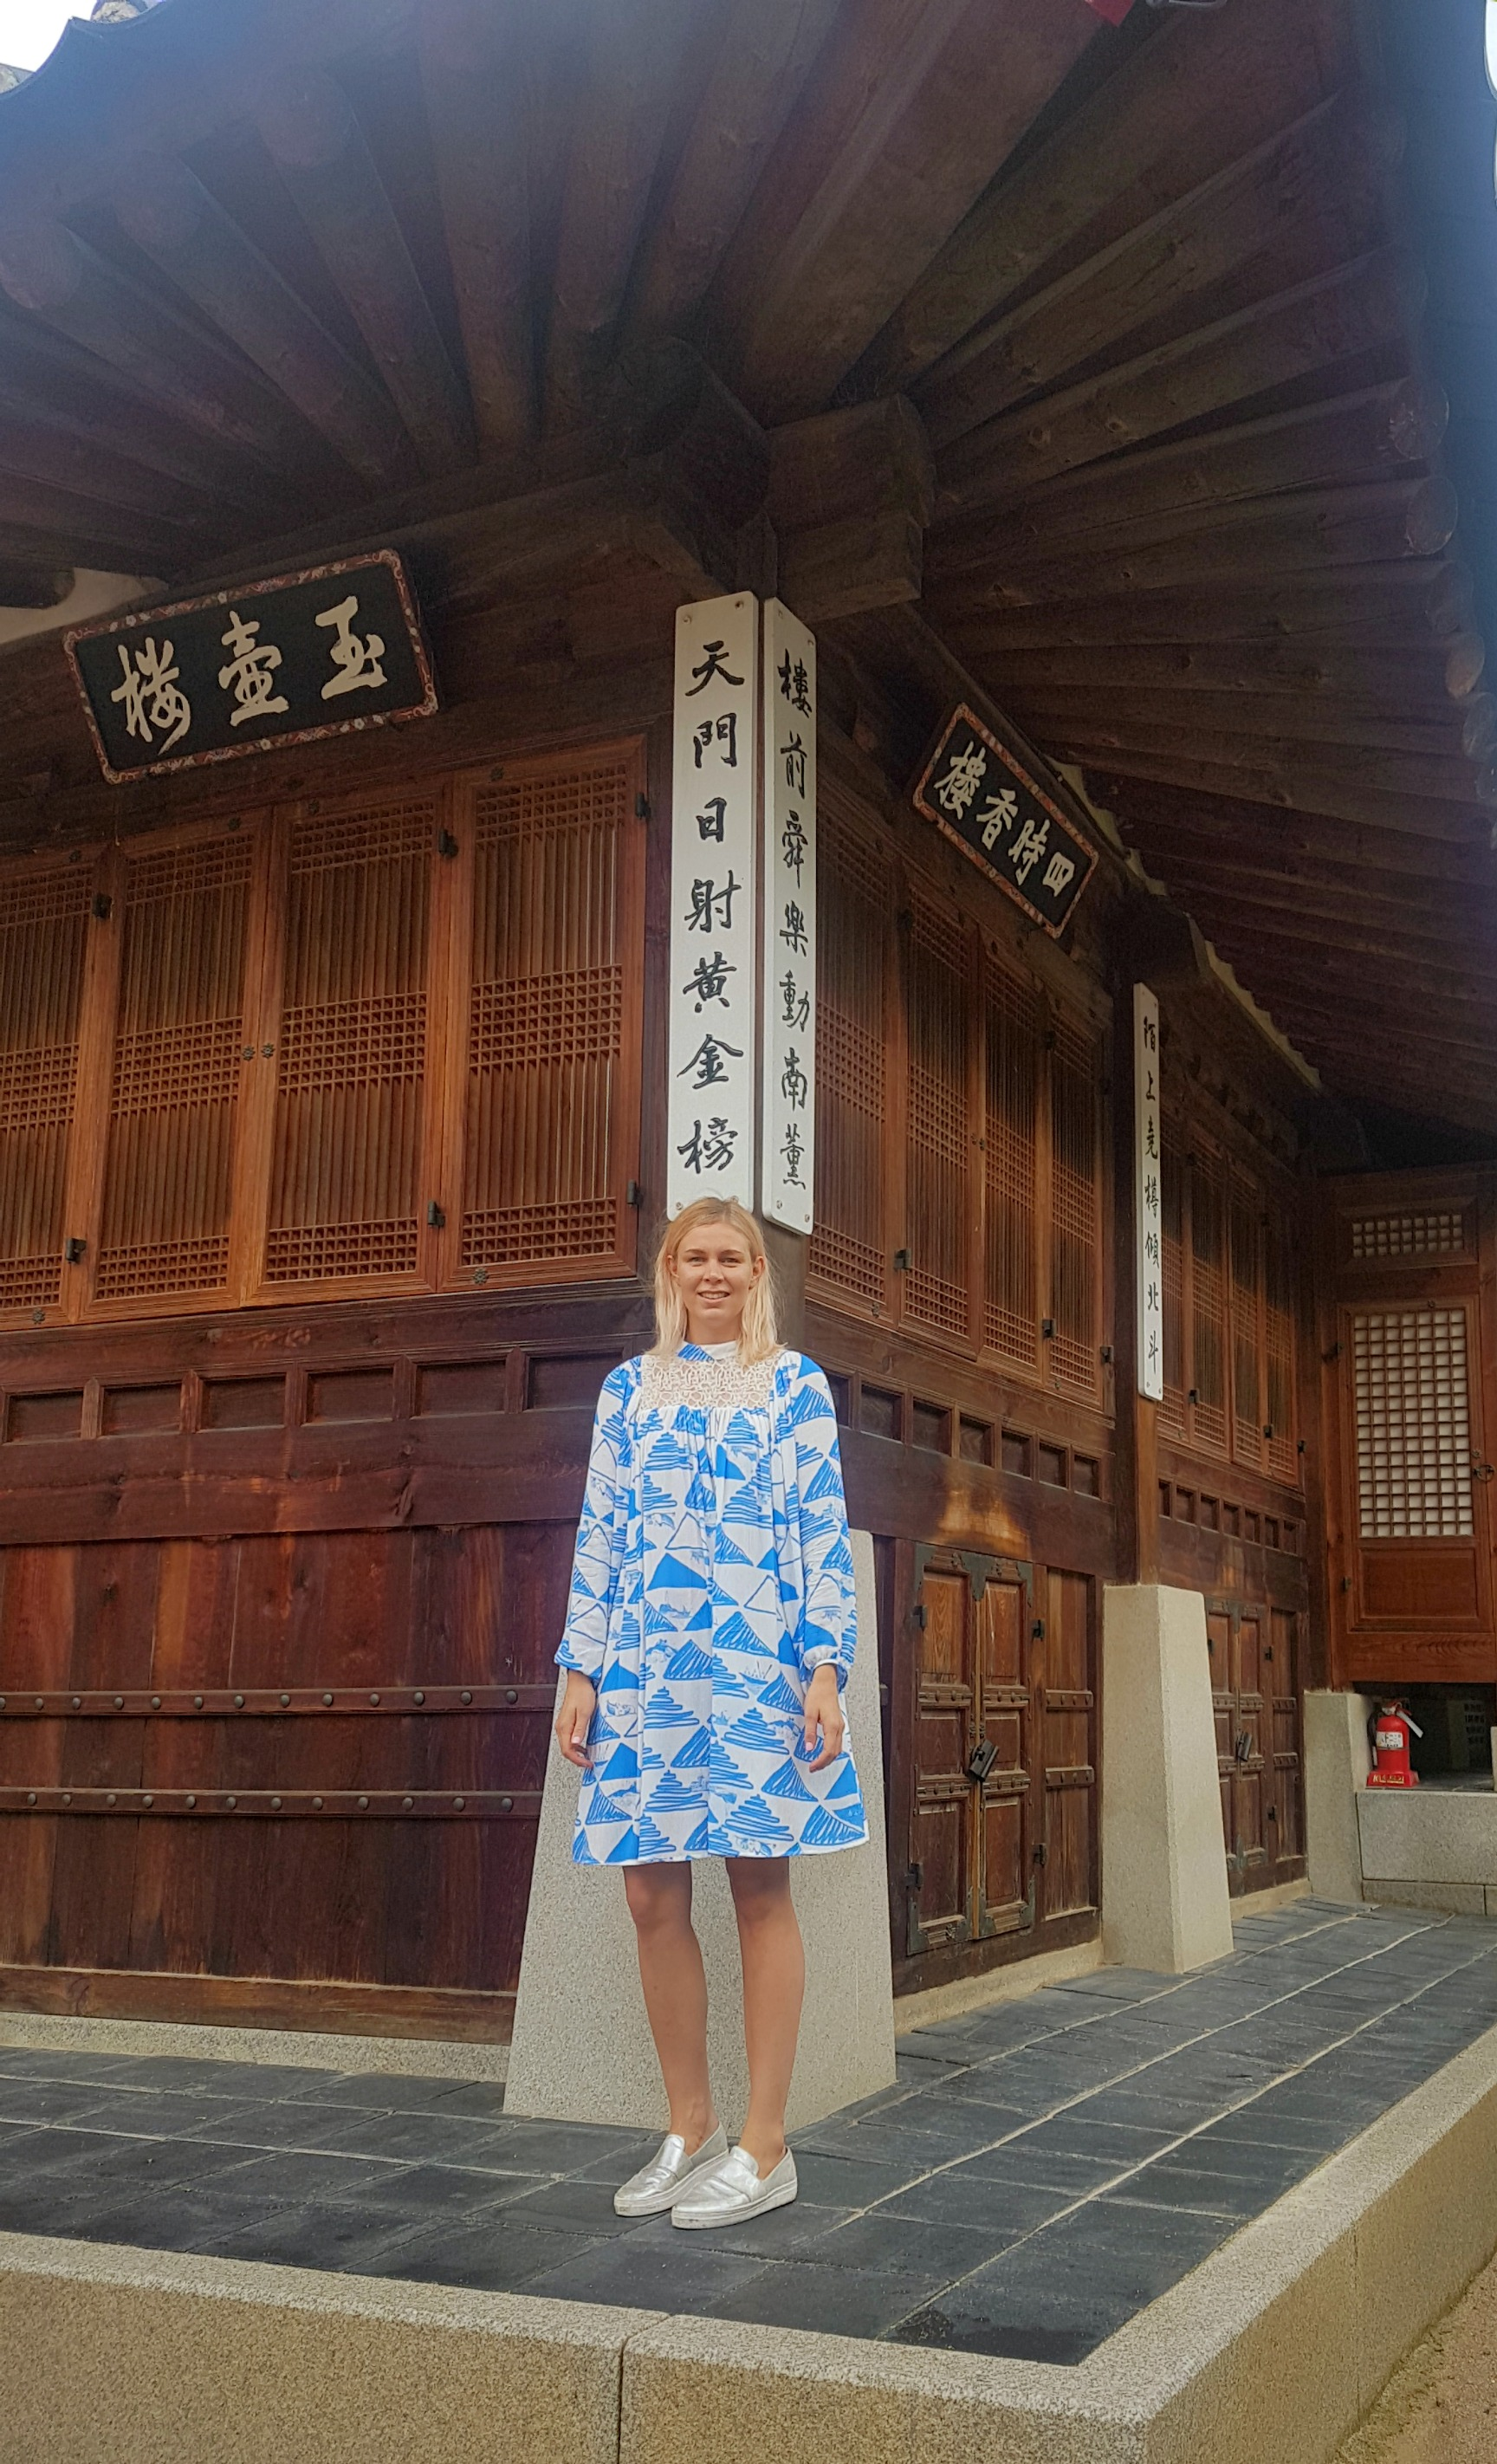 Outside Geoncheonggung Residence wearing Moomin Senja dress by Ivana Helsinki.